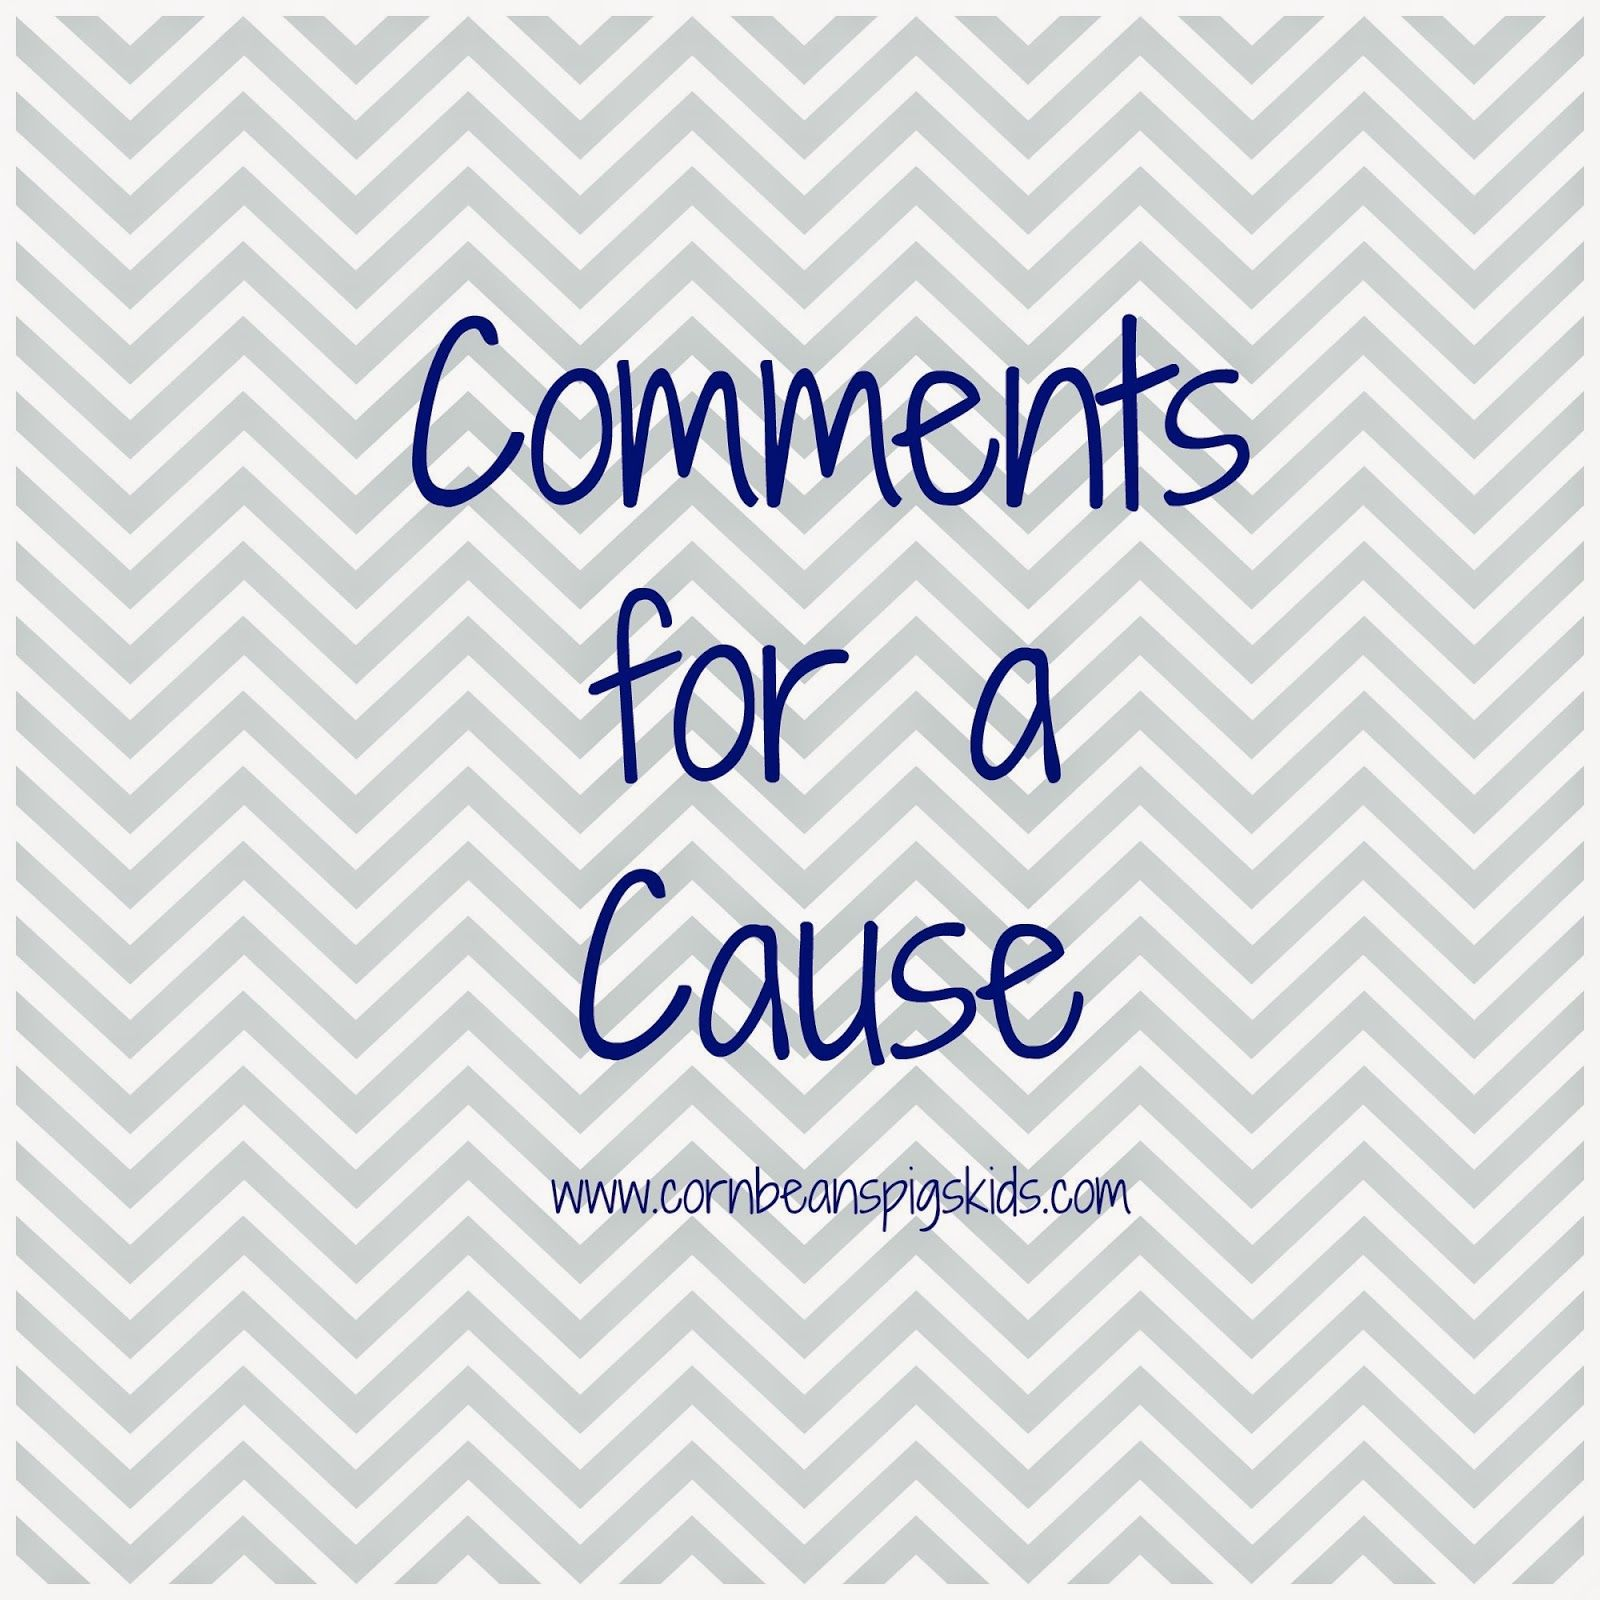 Comments for a cause childrens tumor foundation love